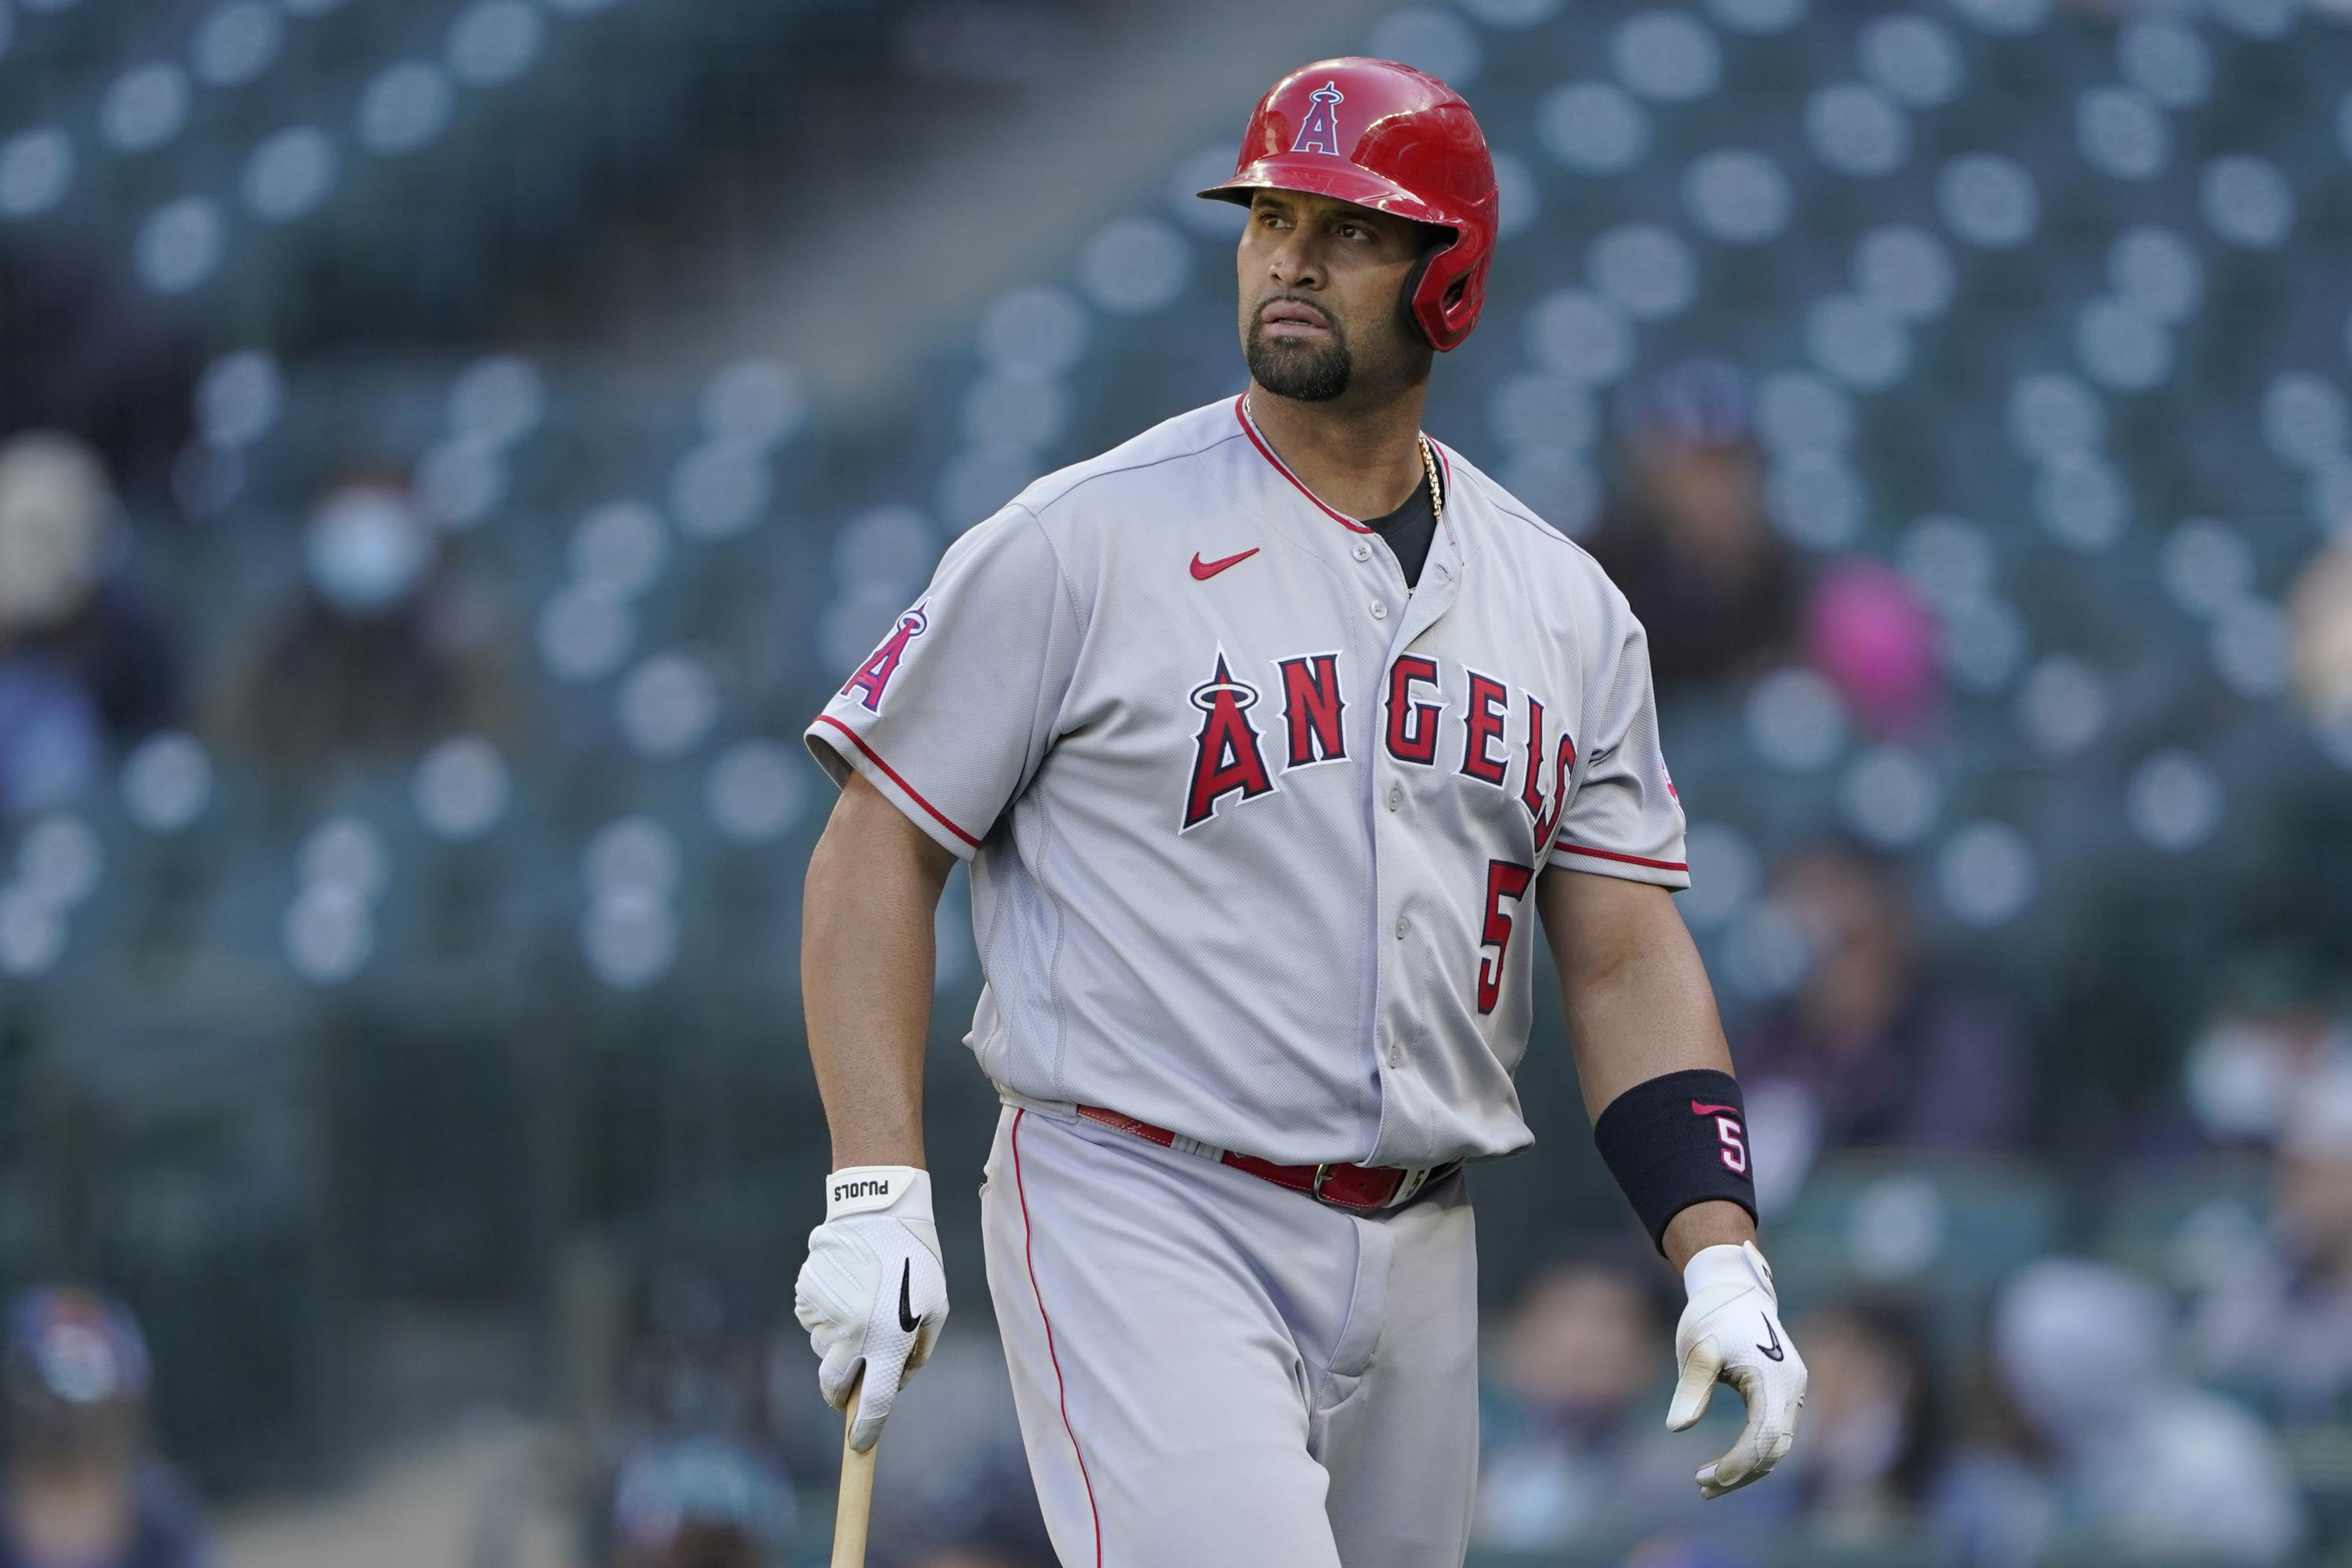 Slugger Albert Pujols designated for assignment by Angels